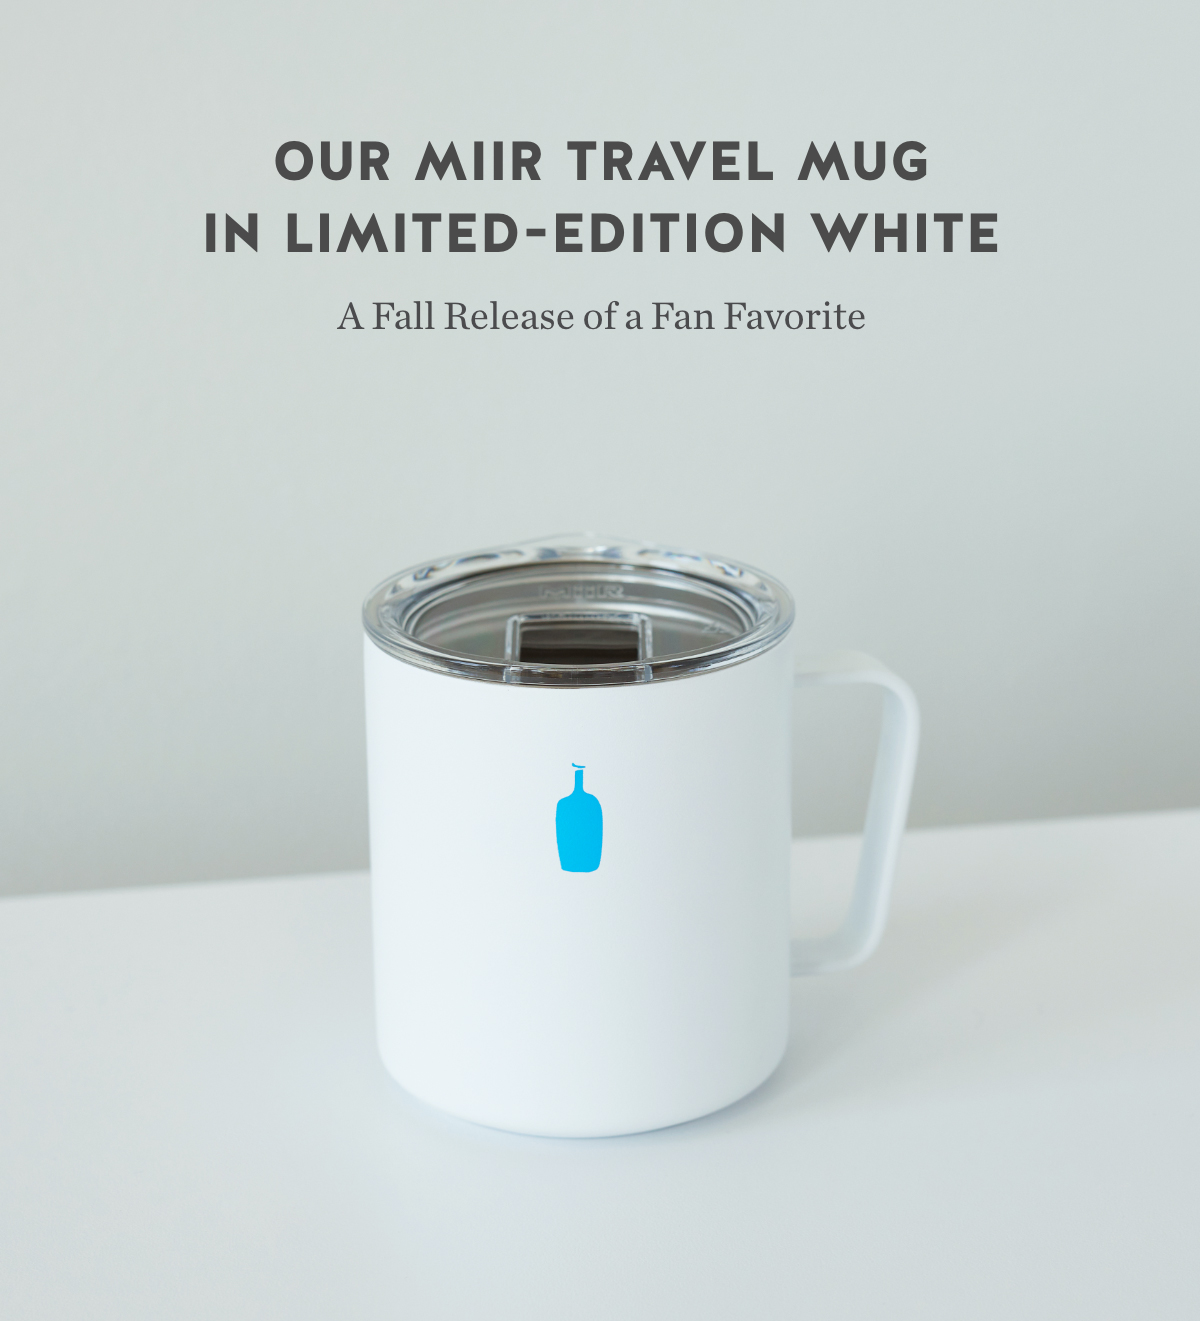 Our MiiR Travel Mug in Limited-Edition White. A Fall Release of a Fan Favorite.